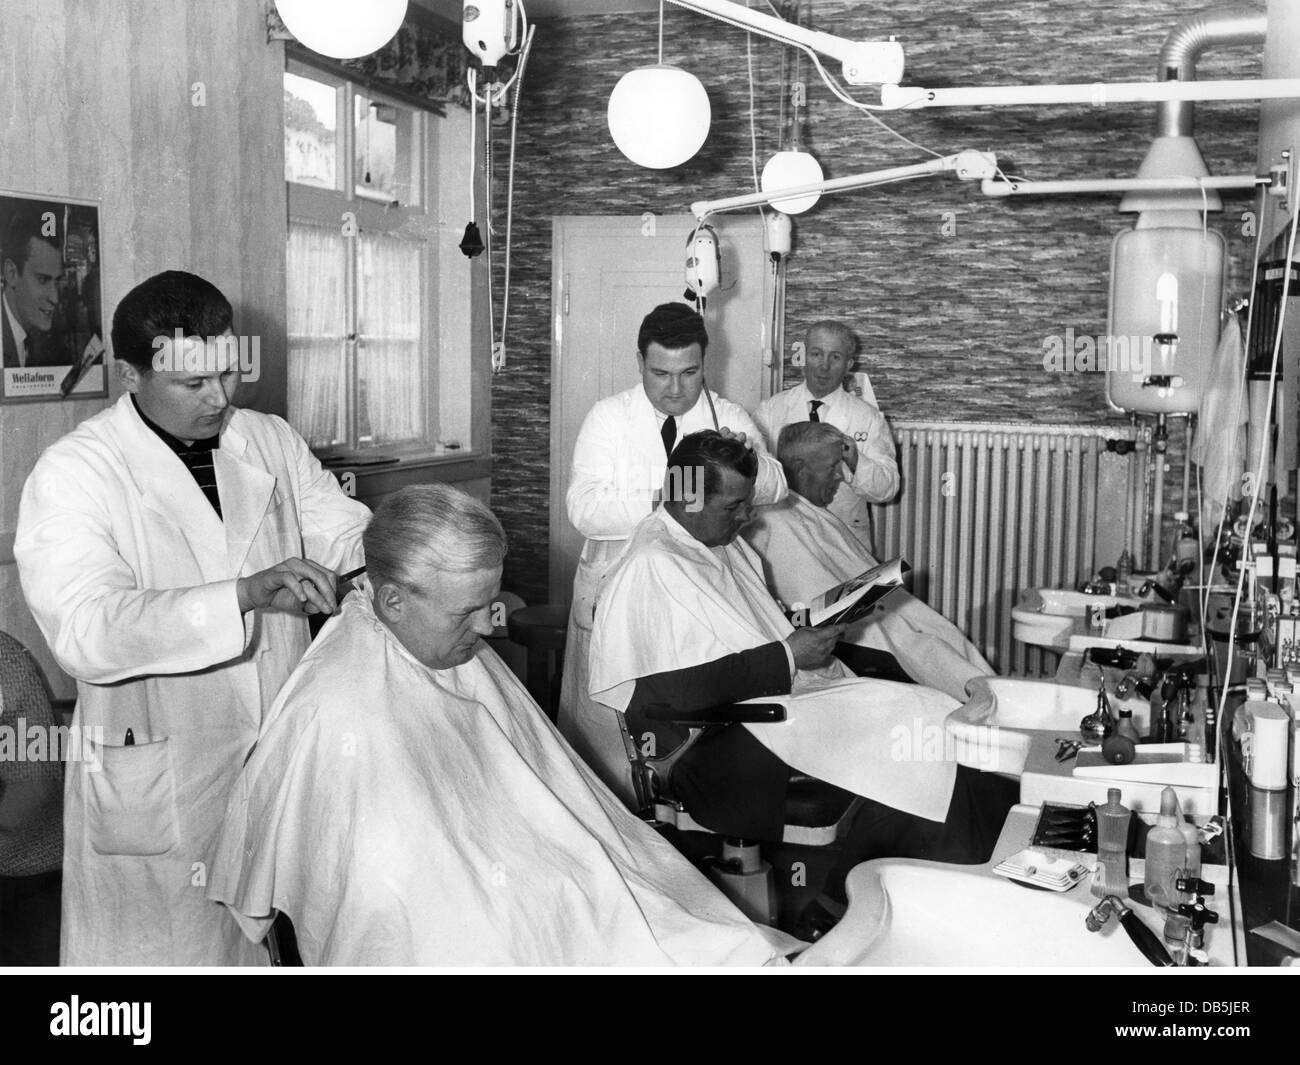 People, Professions, Barber, Barber Shop, West Germany